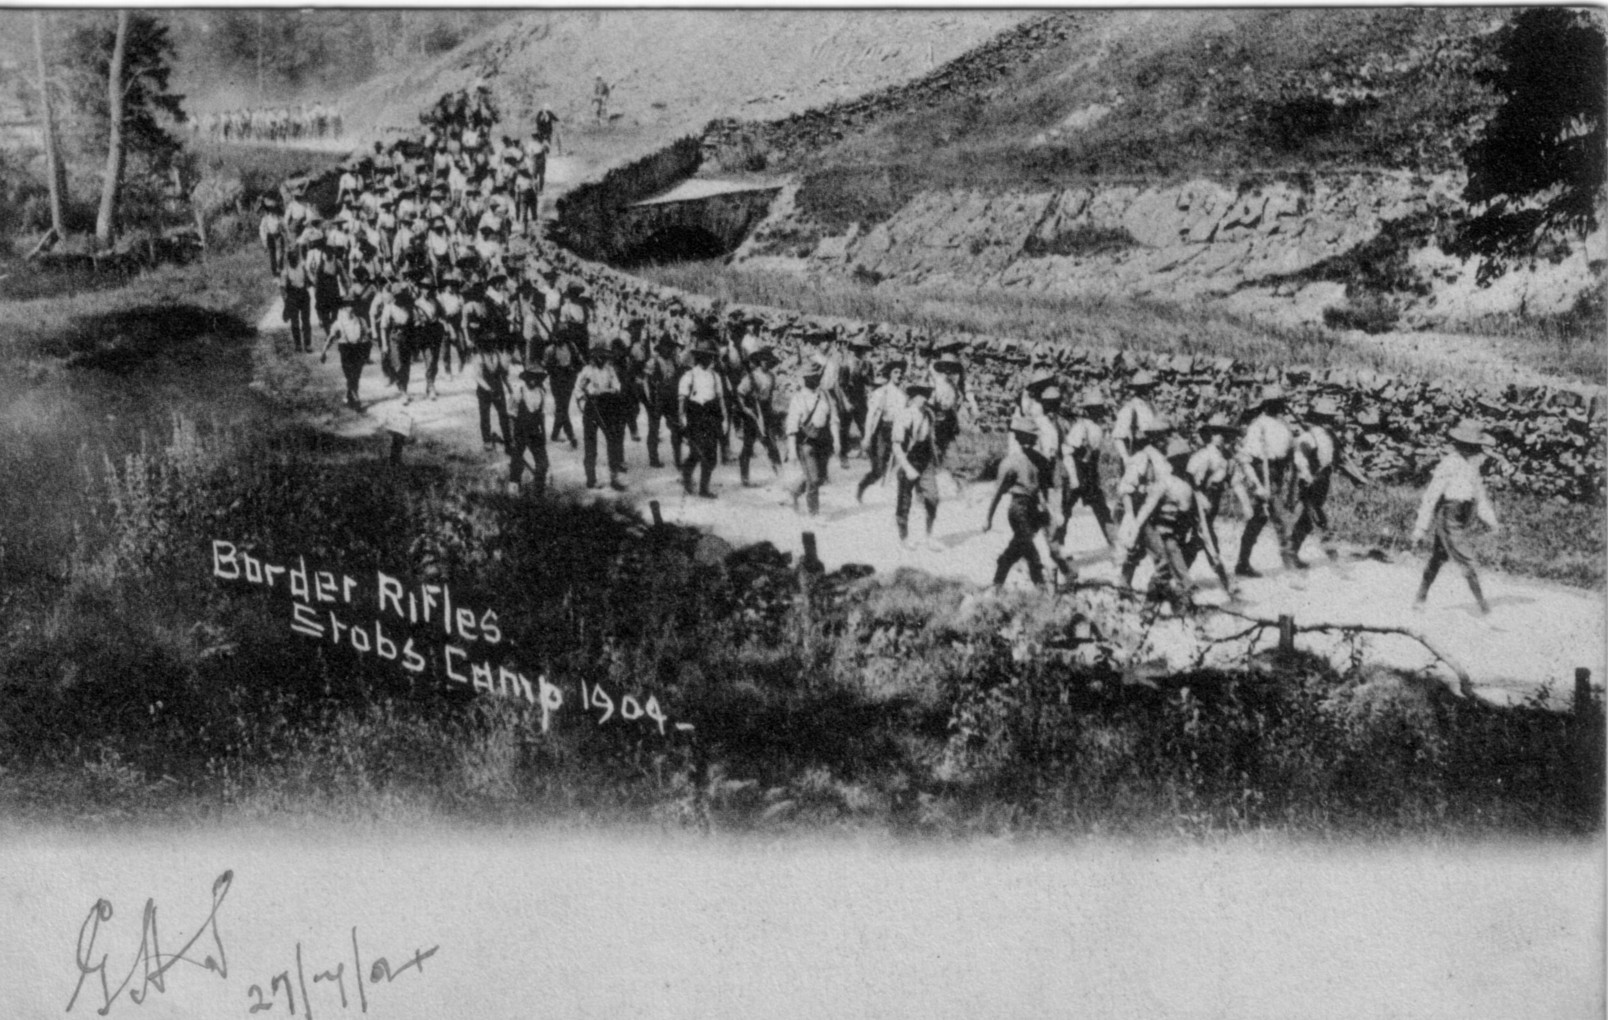 Stobs Camp; Marching; First World War; 1904; Border Rifles